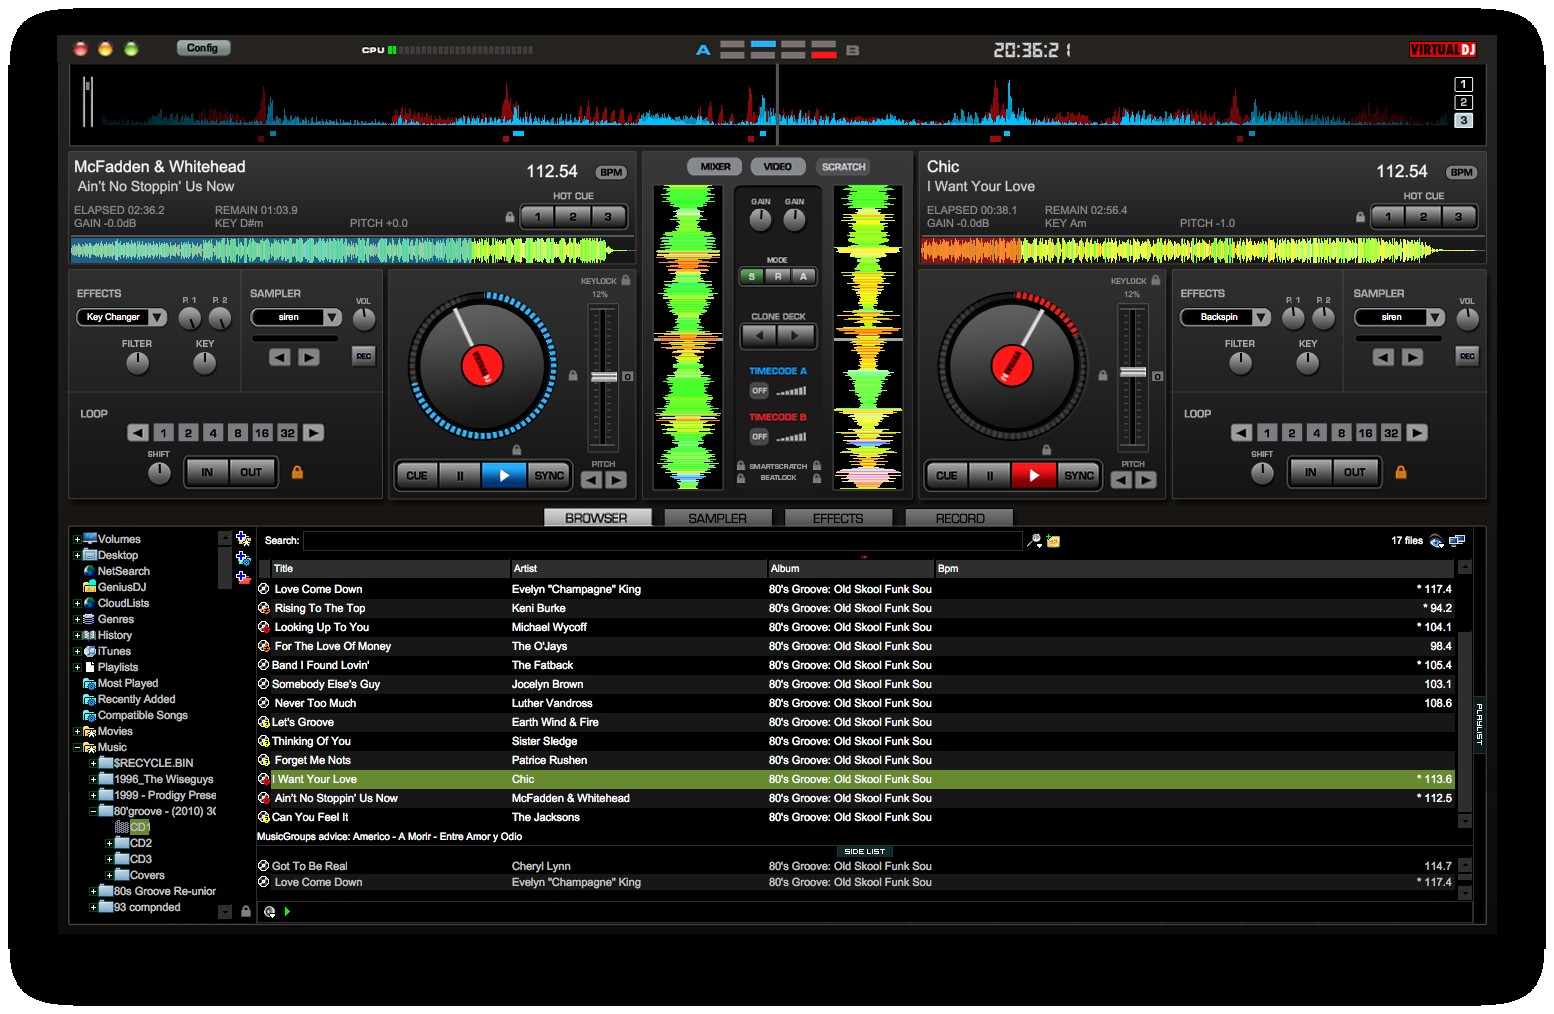 VIRTUAL DJ 7.3 2013 DOWNLOAD